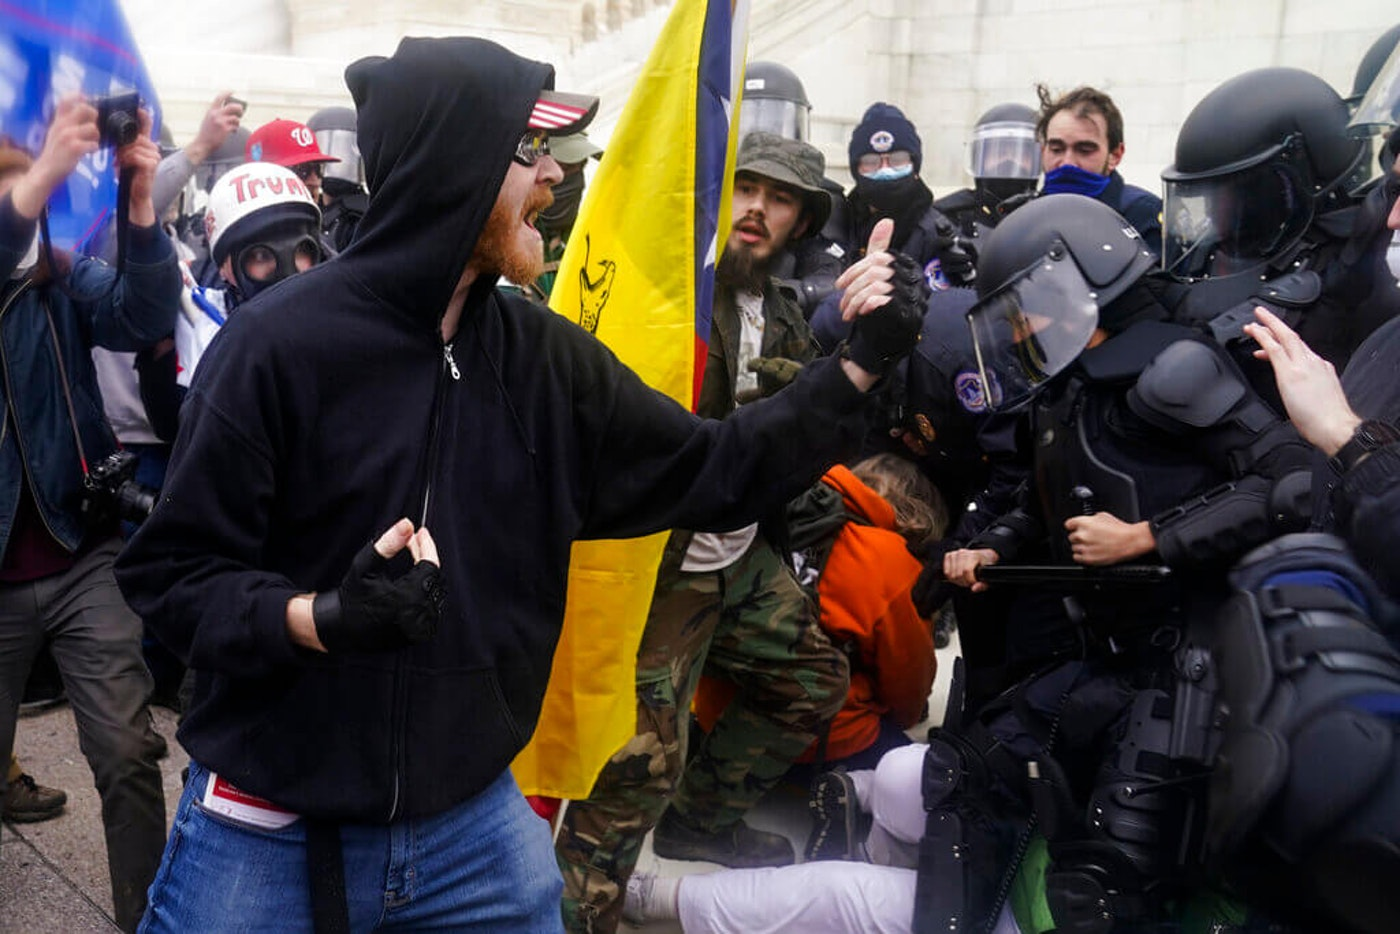 Trump supporters confronting Capitol police officers